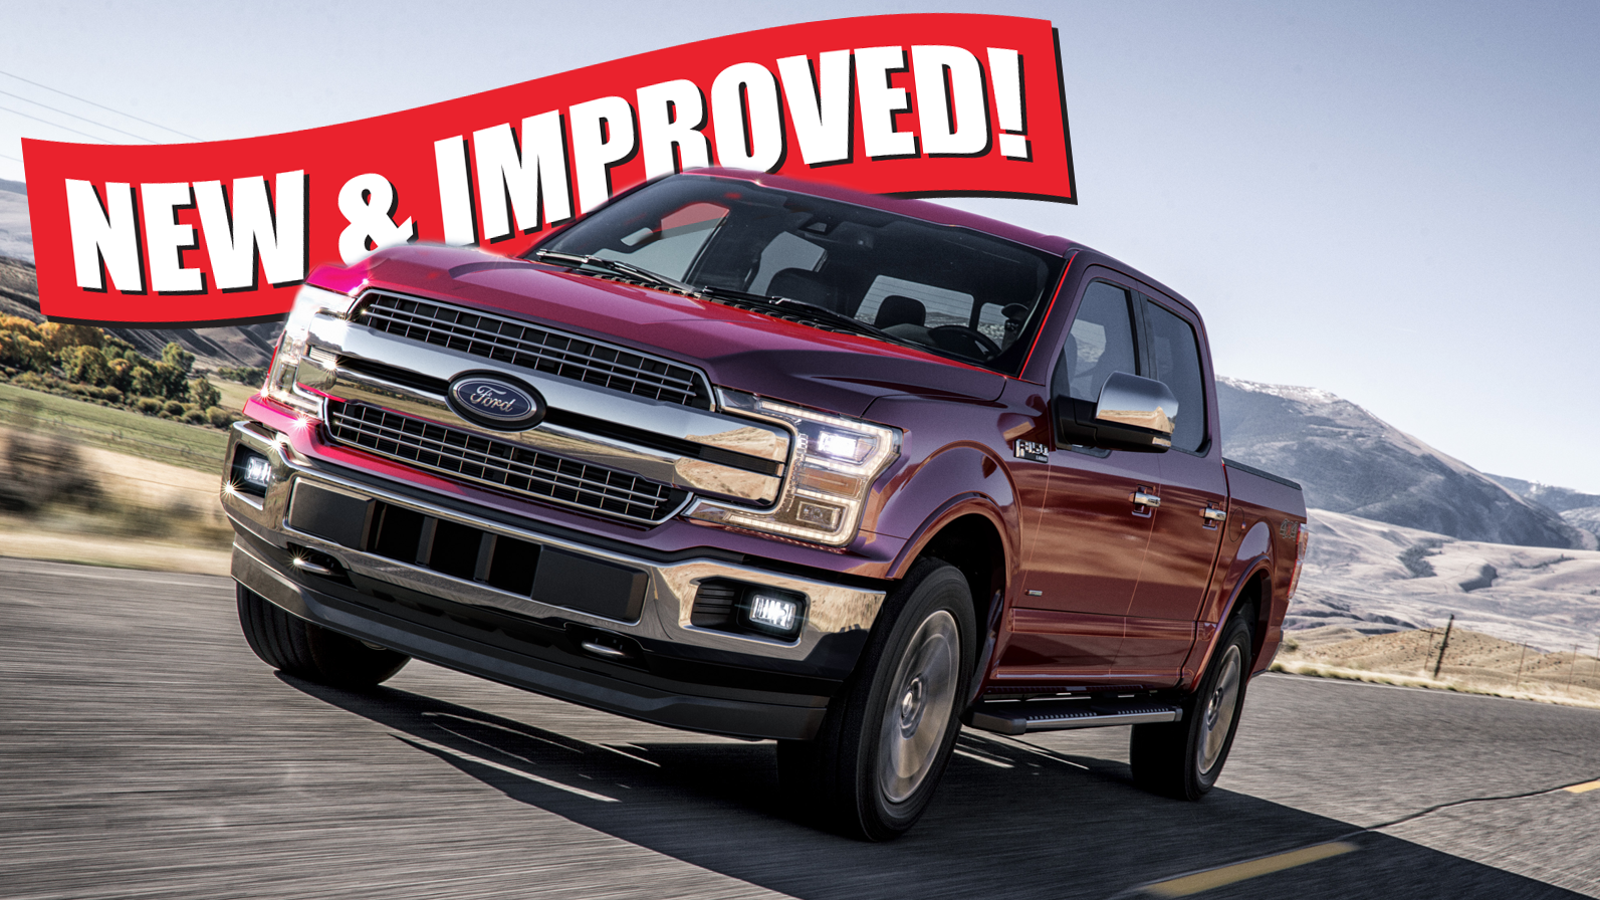 Ford Truck Towing Capacity >> The 2018 Ford F-150 Adds 1-2 MPG And Can Tow Nearly 1,000 ...